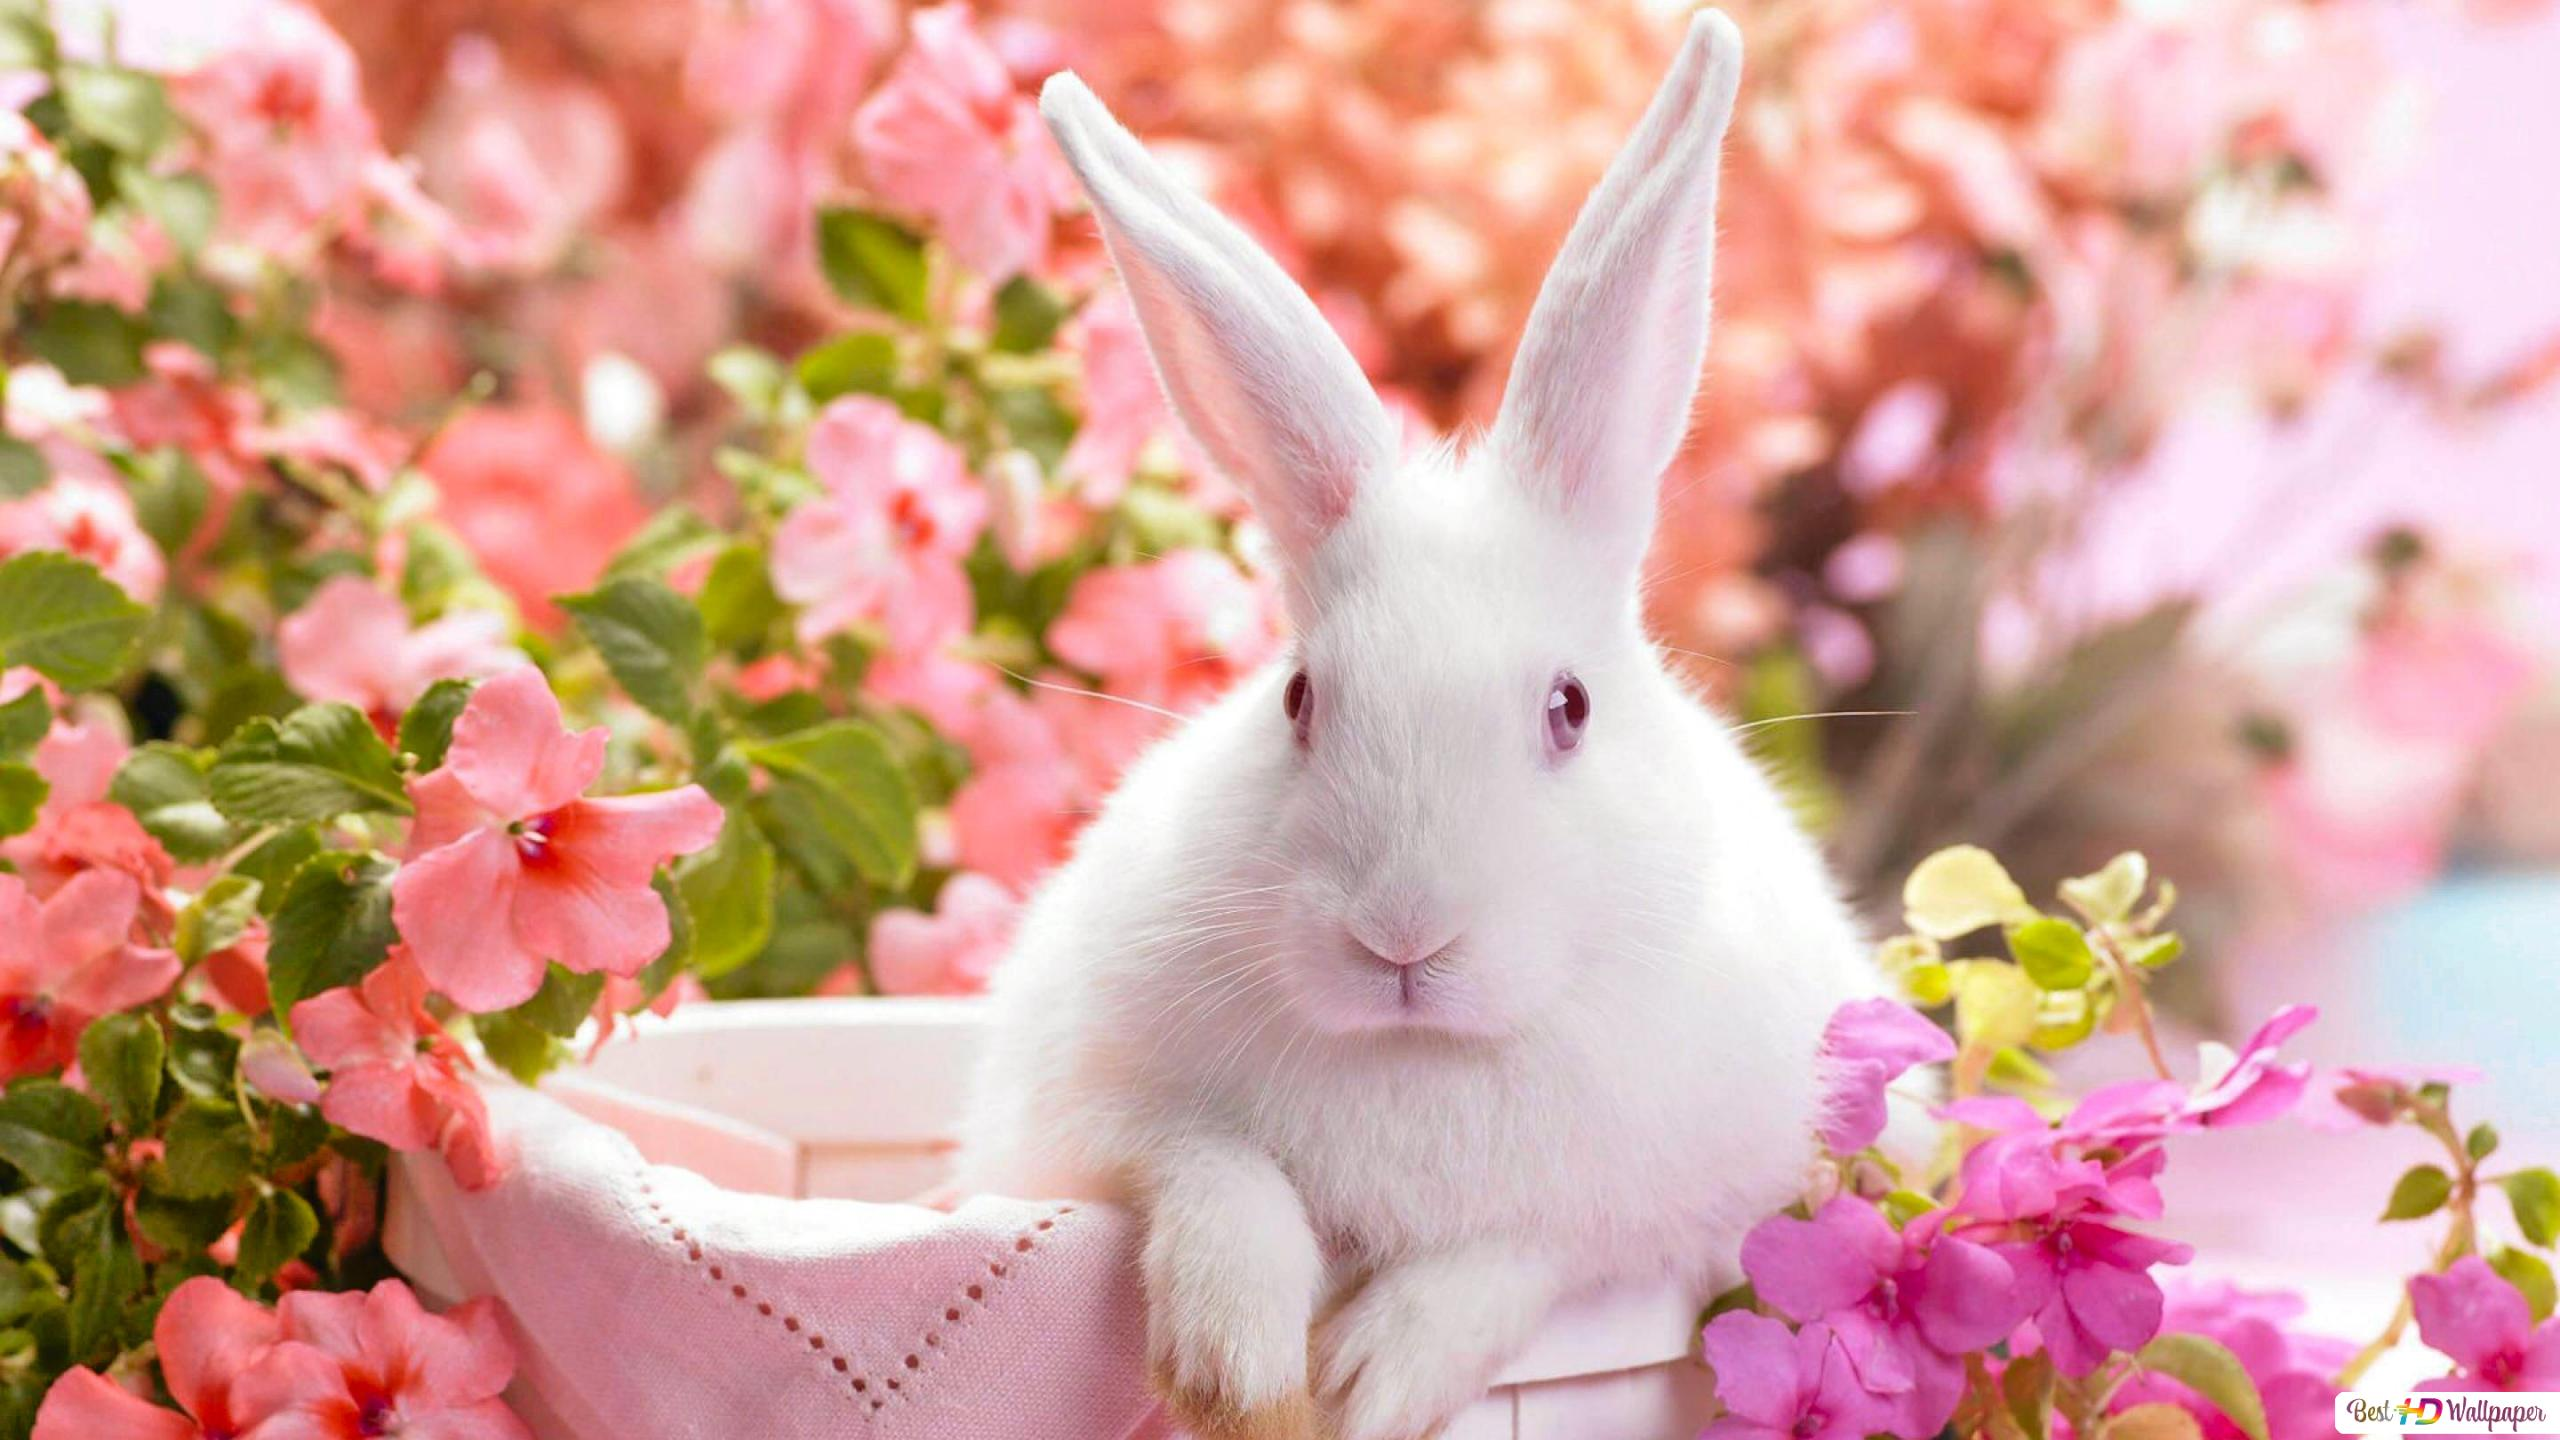 White Bunny Surrounded By Pink And Purple Flowers Hd Wallpaper